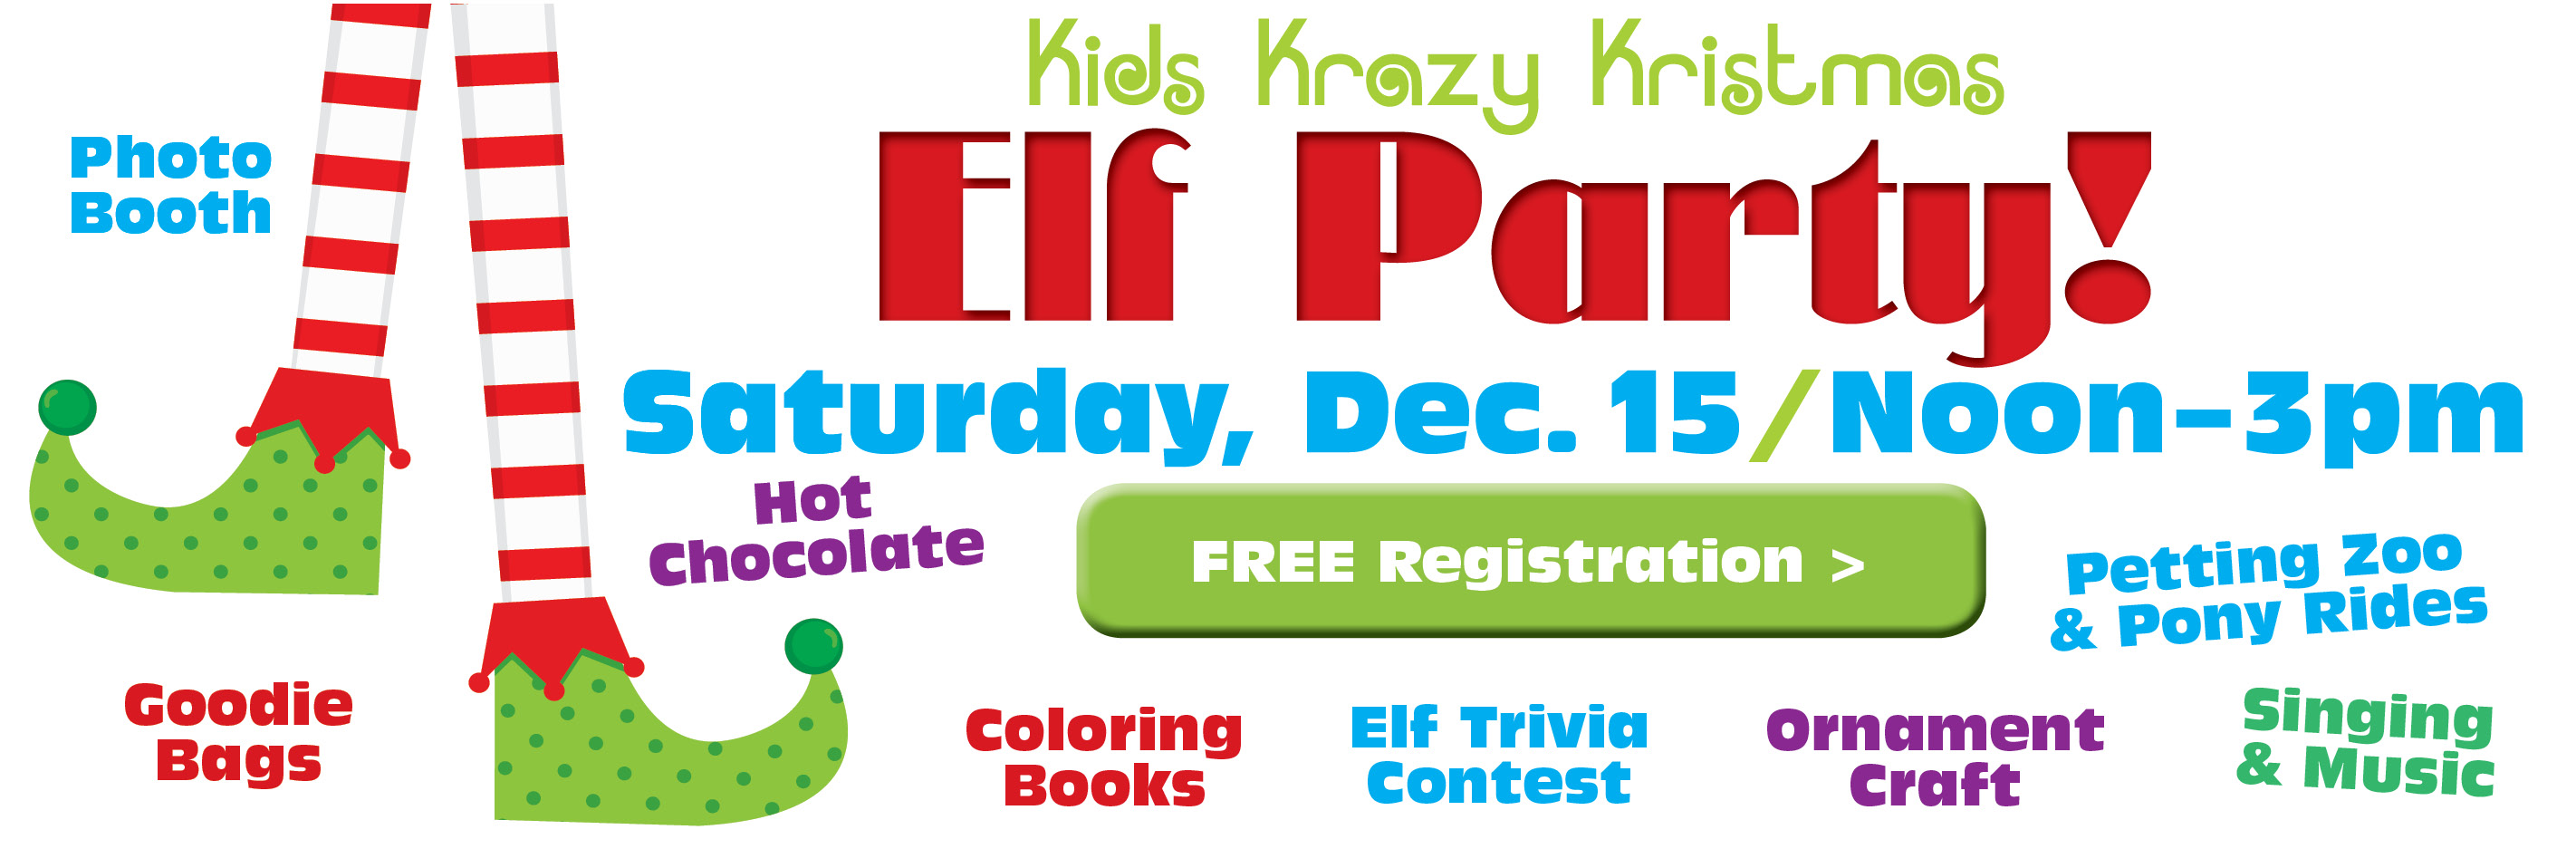 Register for Elf Party